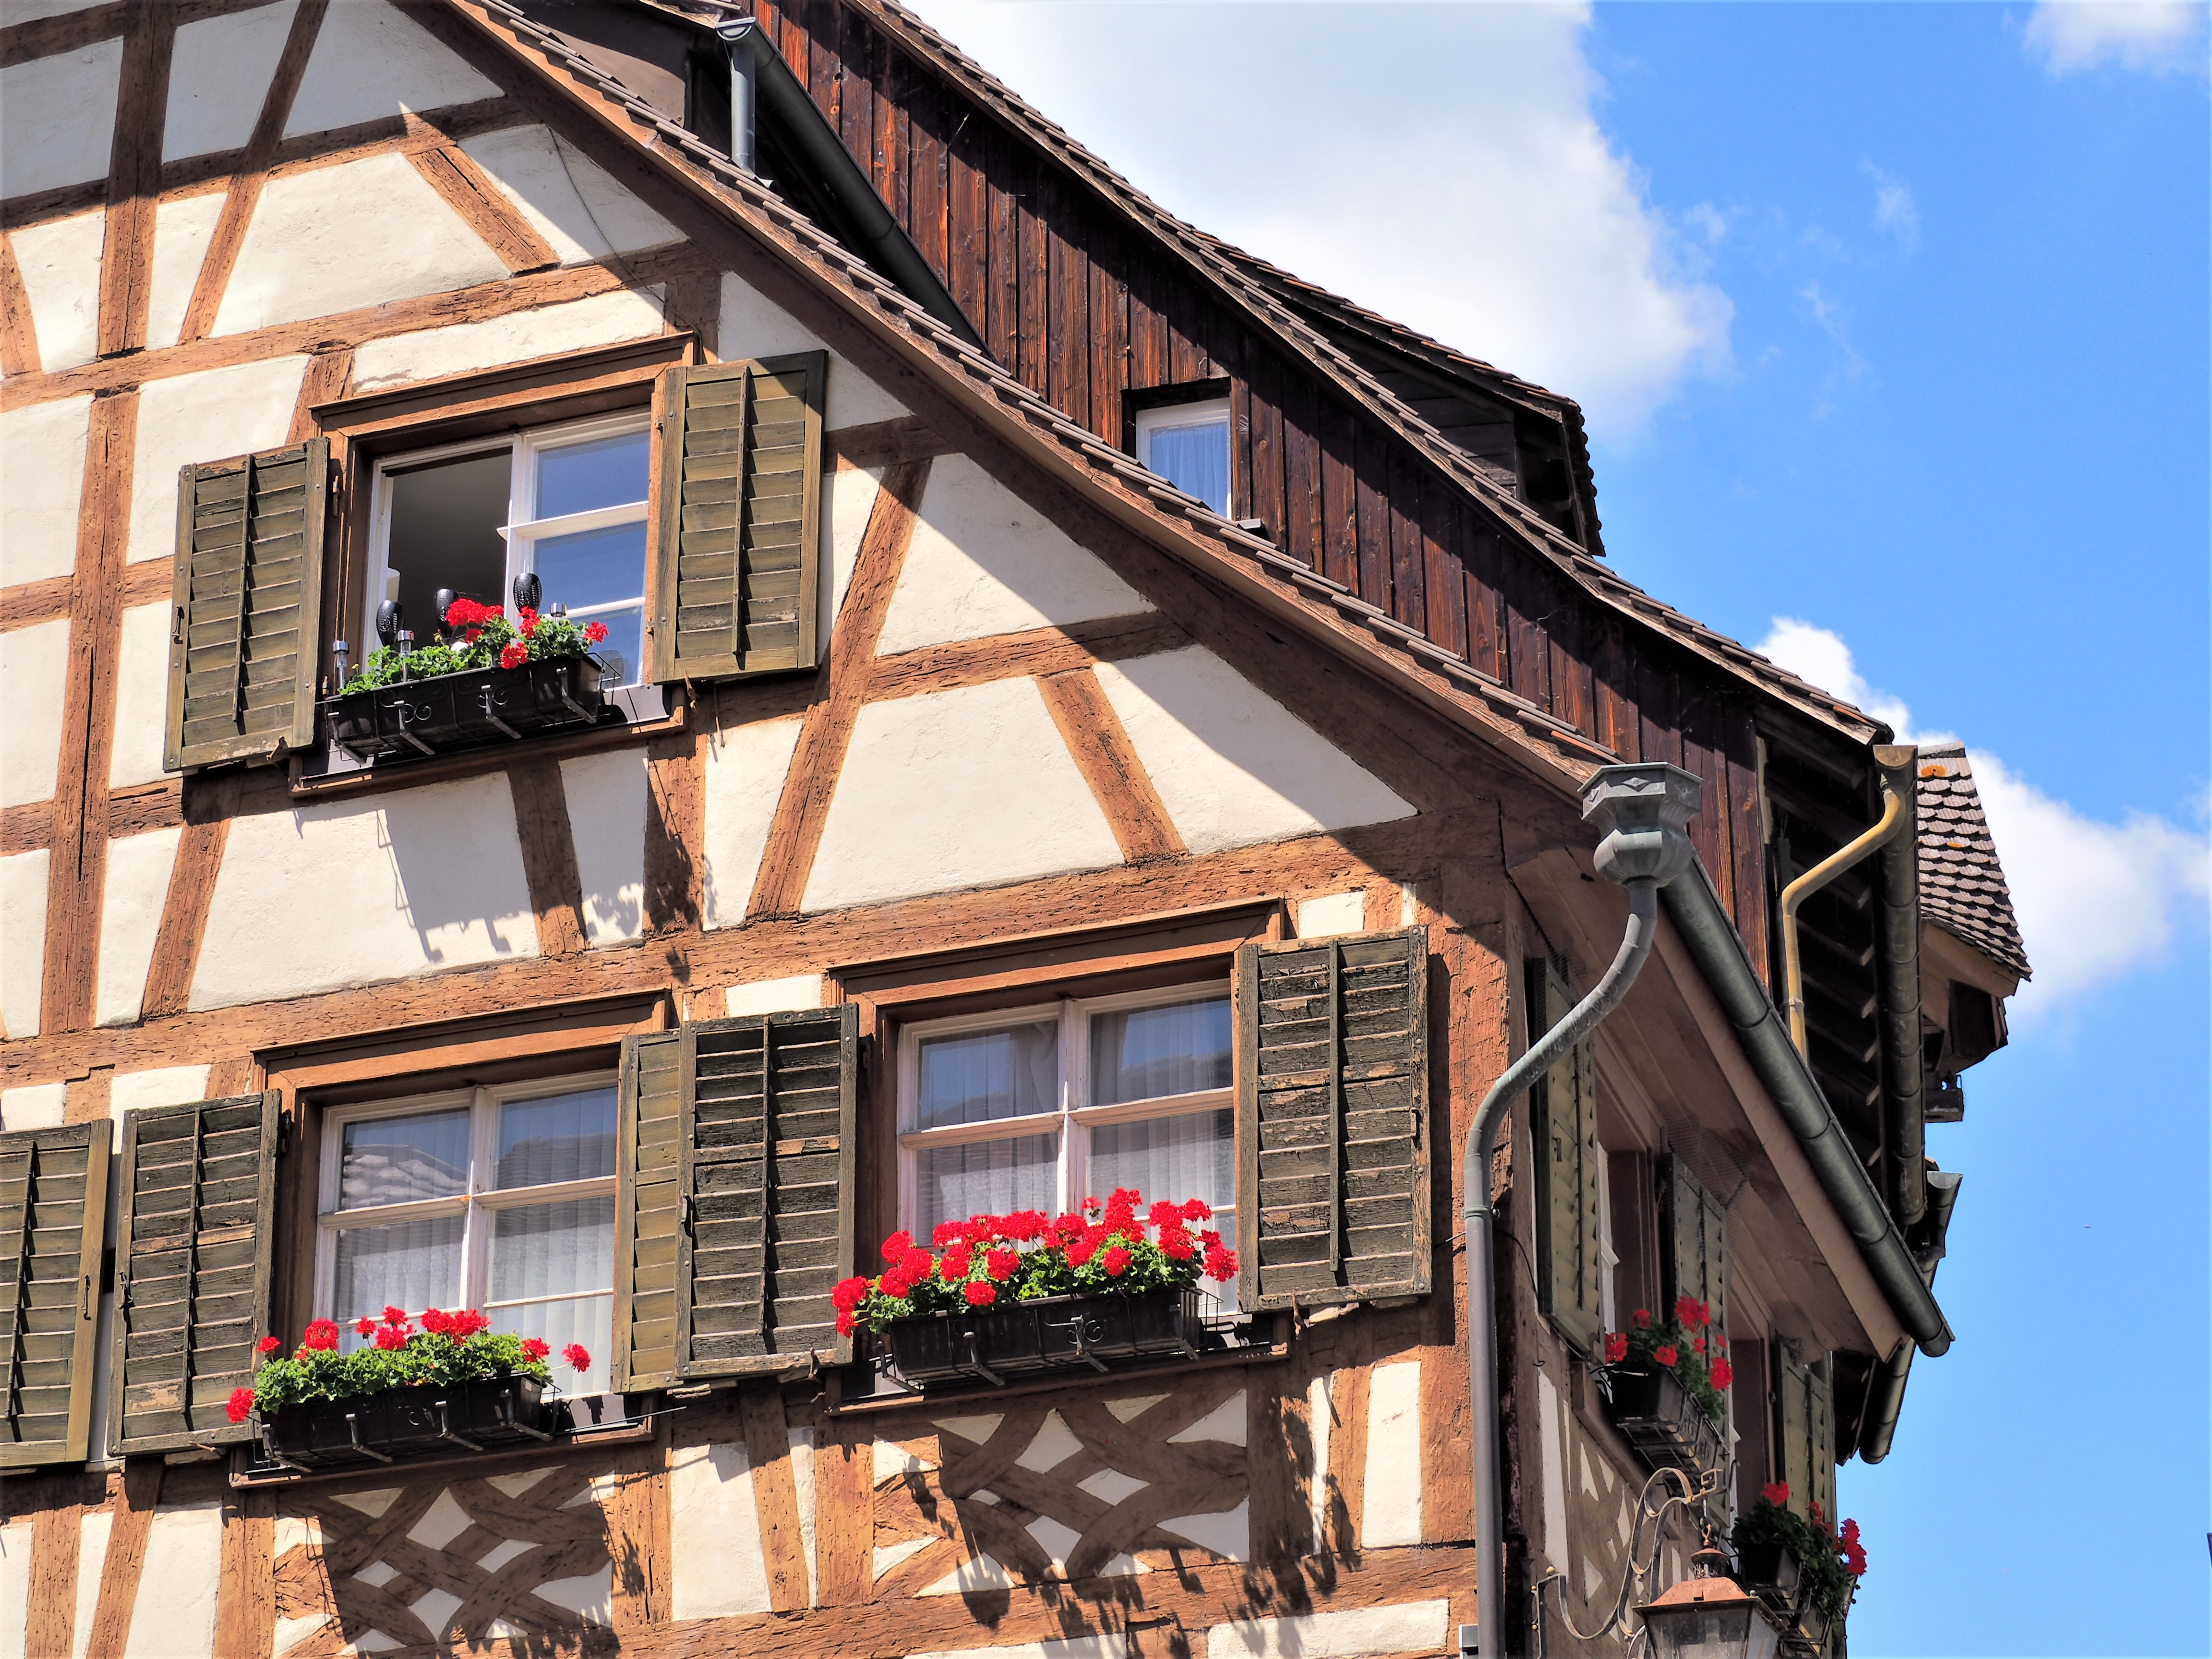 Clio-and-co-blog-voyage-Allemagne-architecture-Bade-Wurtemberg-Meersburg